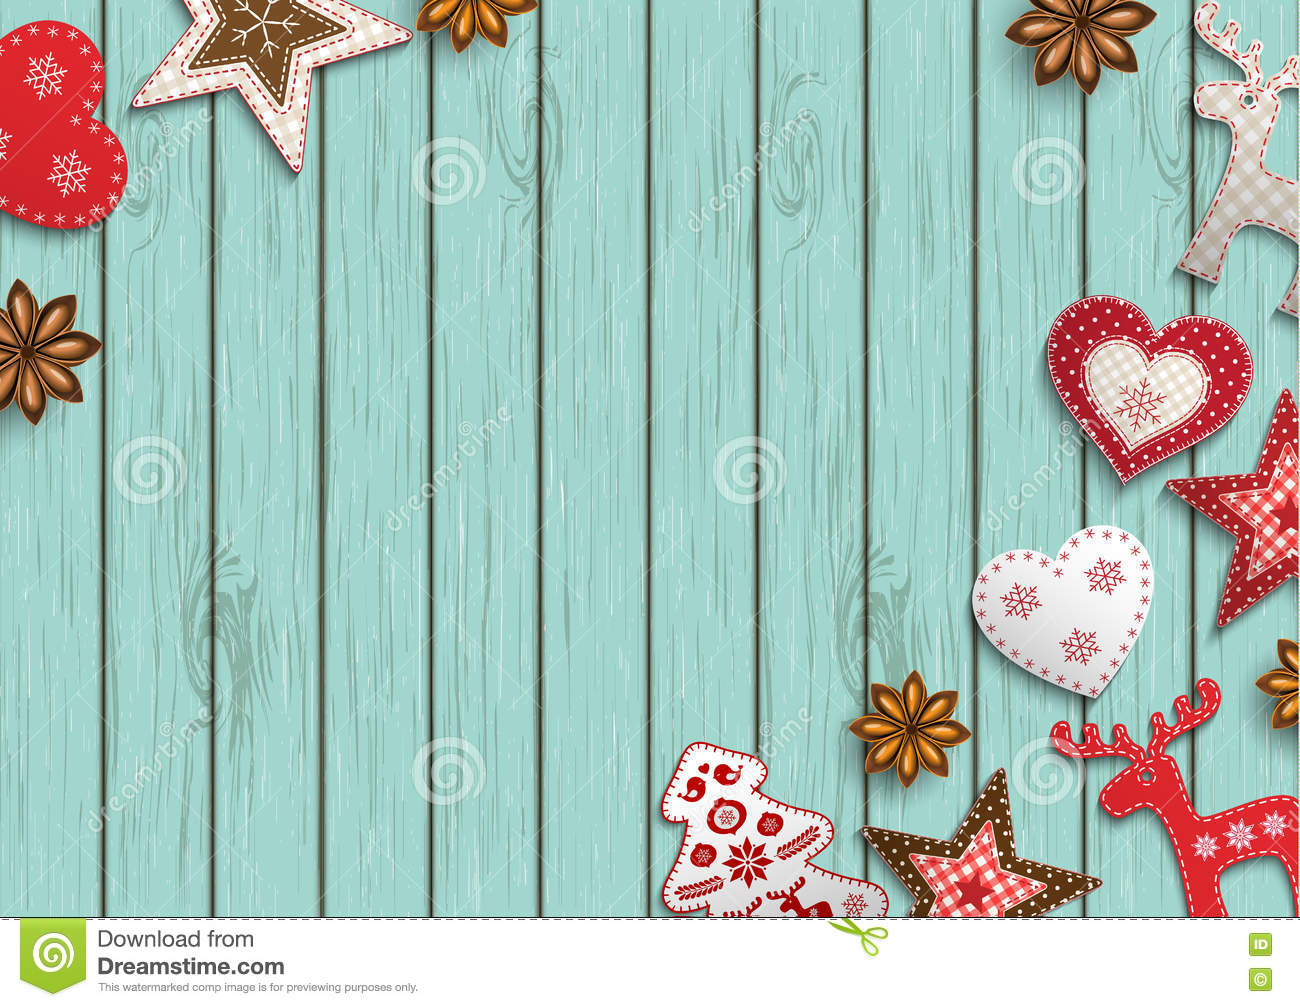 Christmas background, small scandinavian styled decorations lying on blue wooden backdrop, illustration